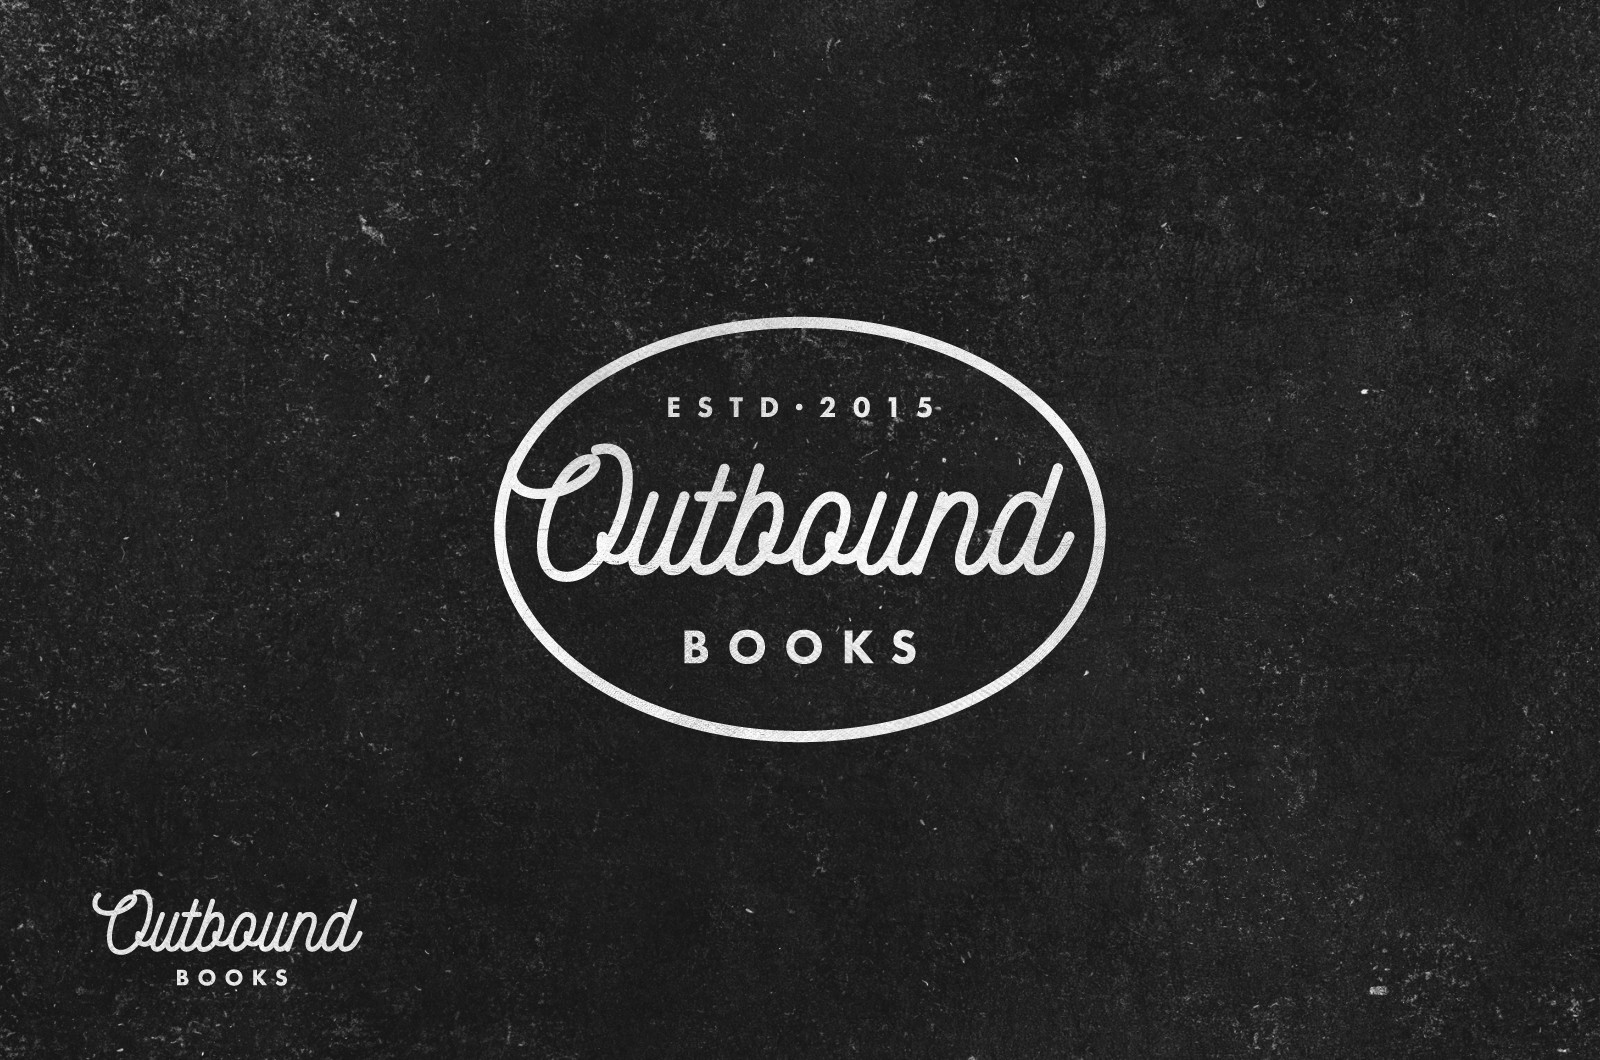 Create vintage logo for new boutique publishing company